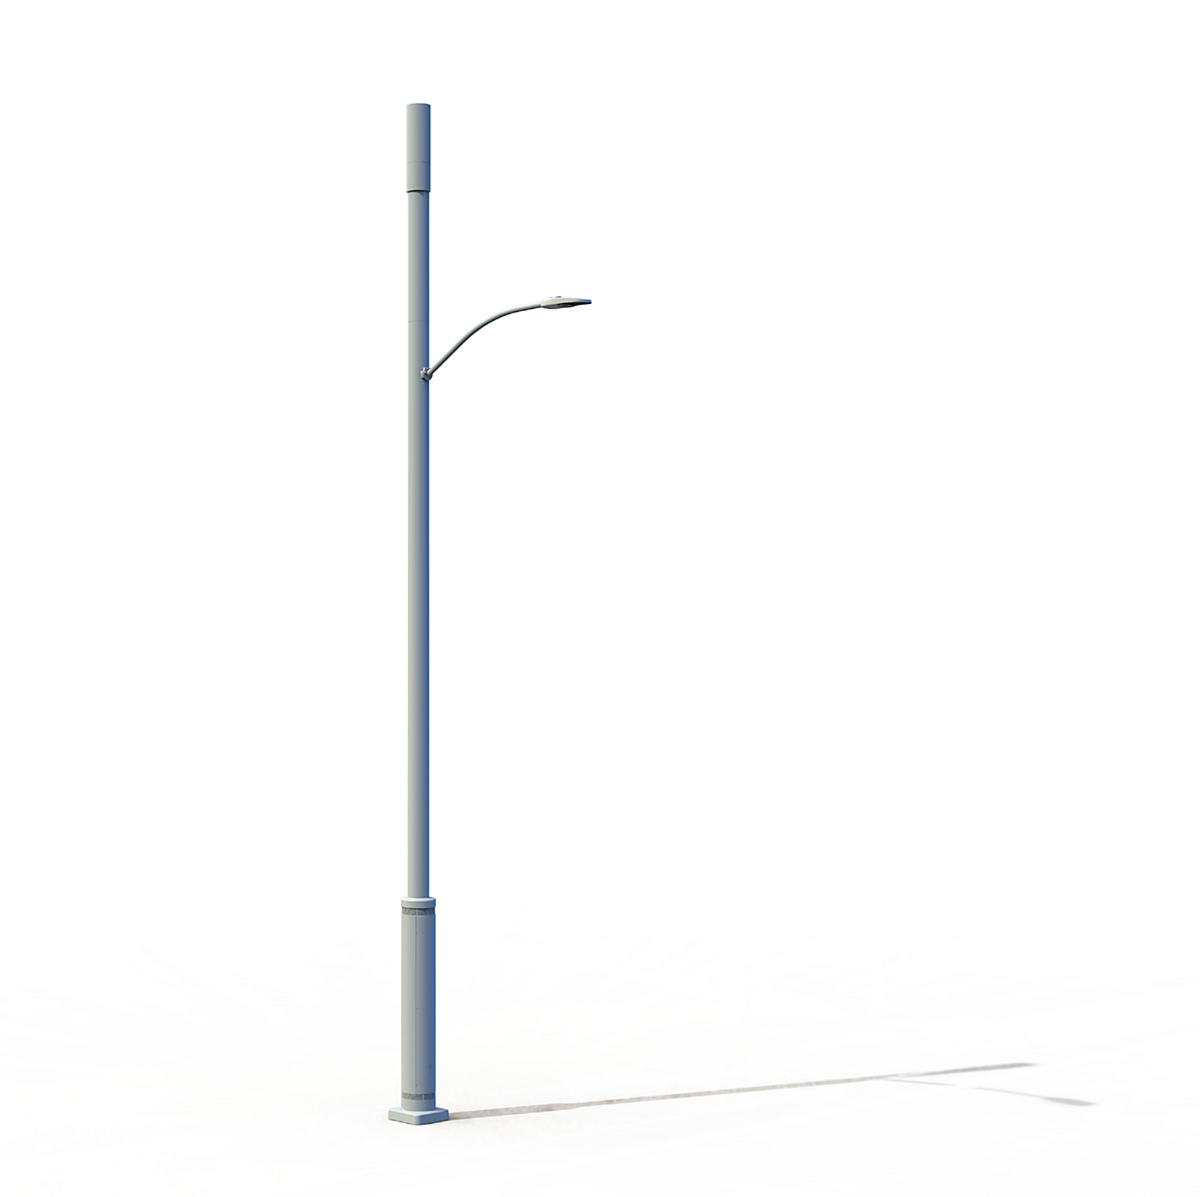 BrightSites T-Series Streamline Pole